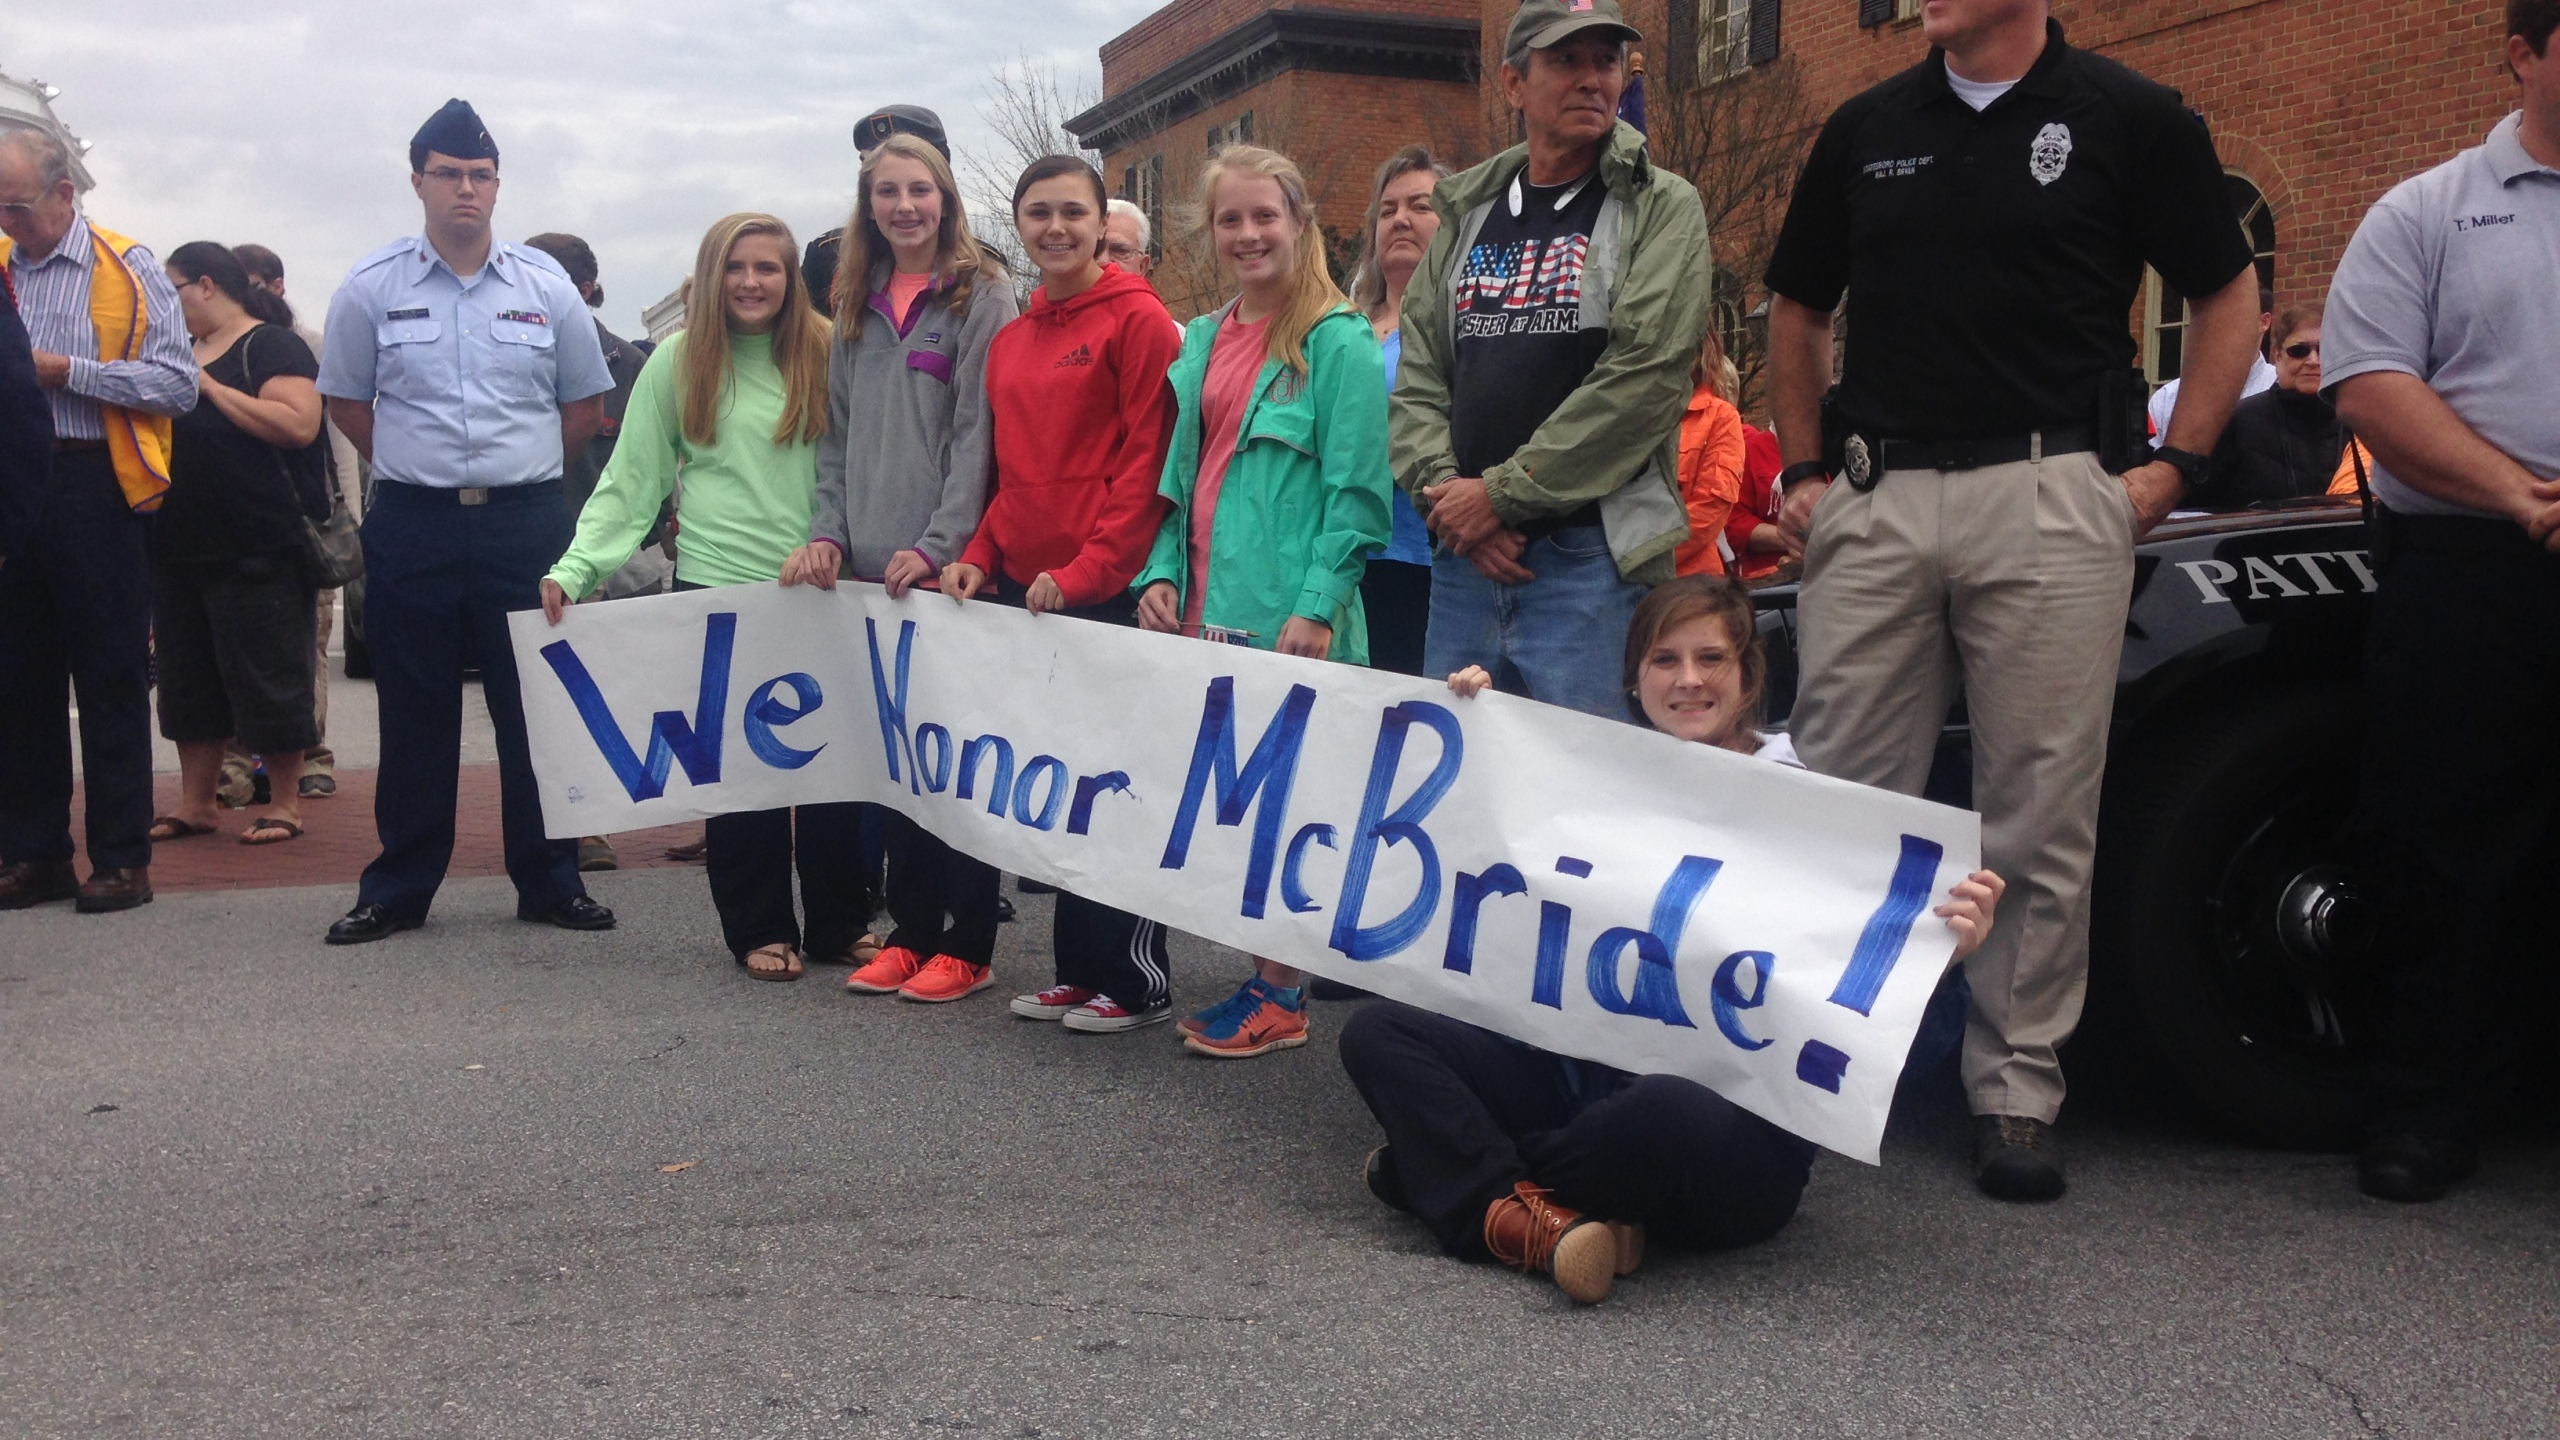 WE HONOR MCBRIDE_79930